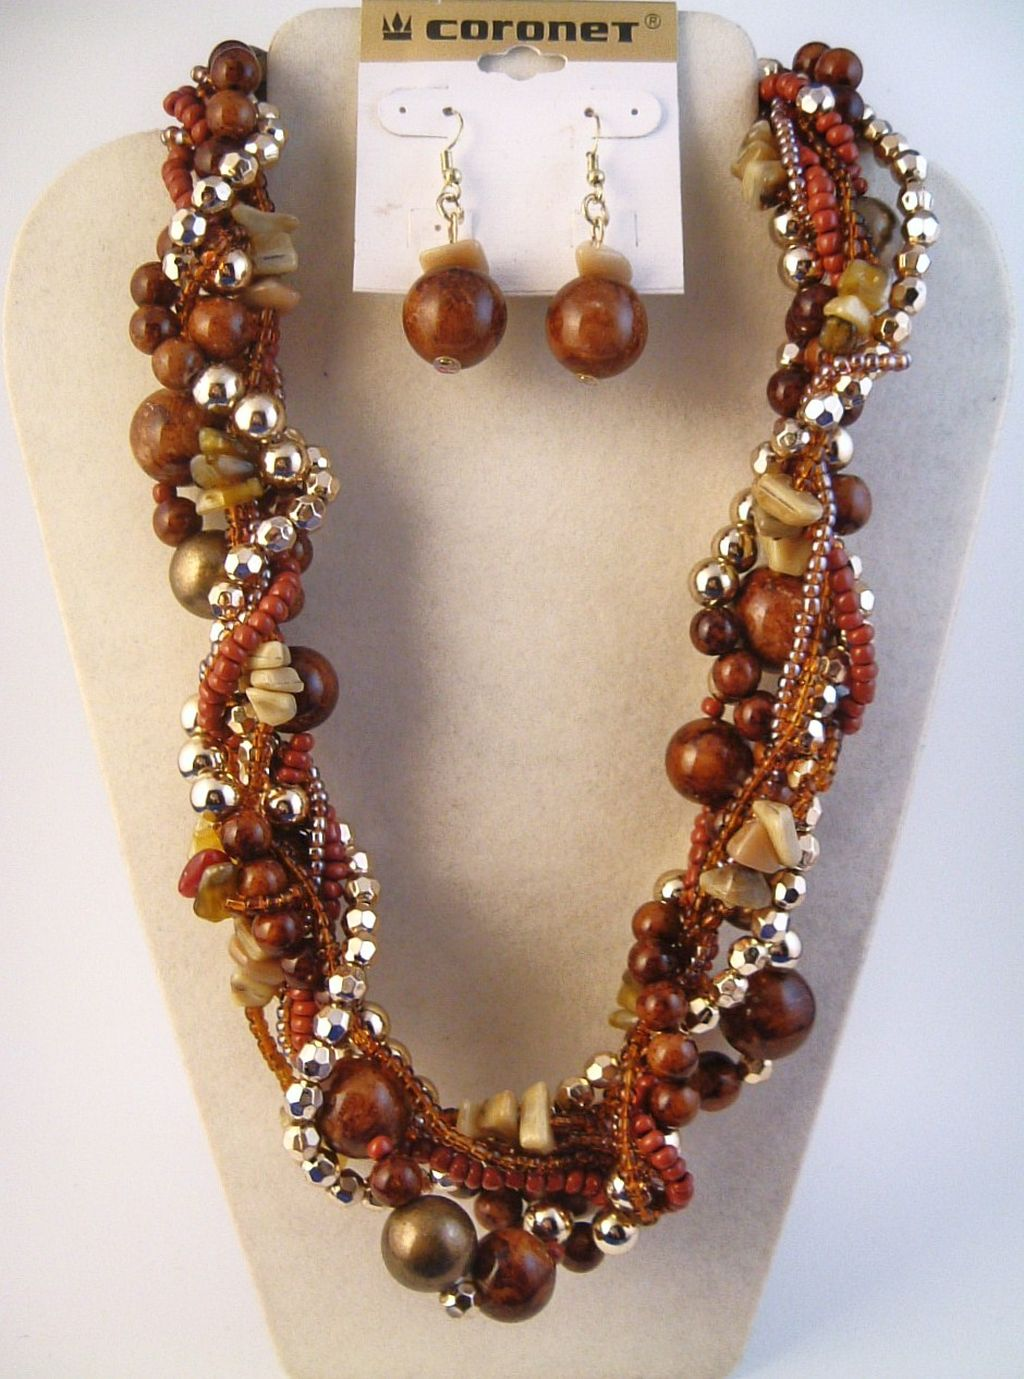 Brown/Gold Twisted Multi-Layers Large Beads Necklace Earrings Jewelry Set